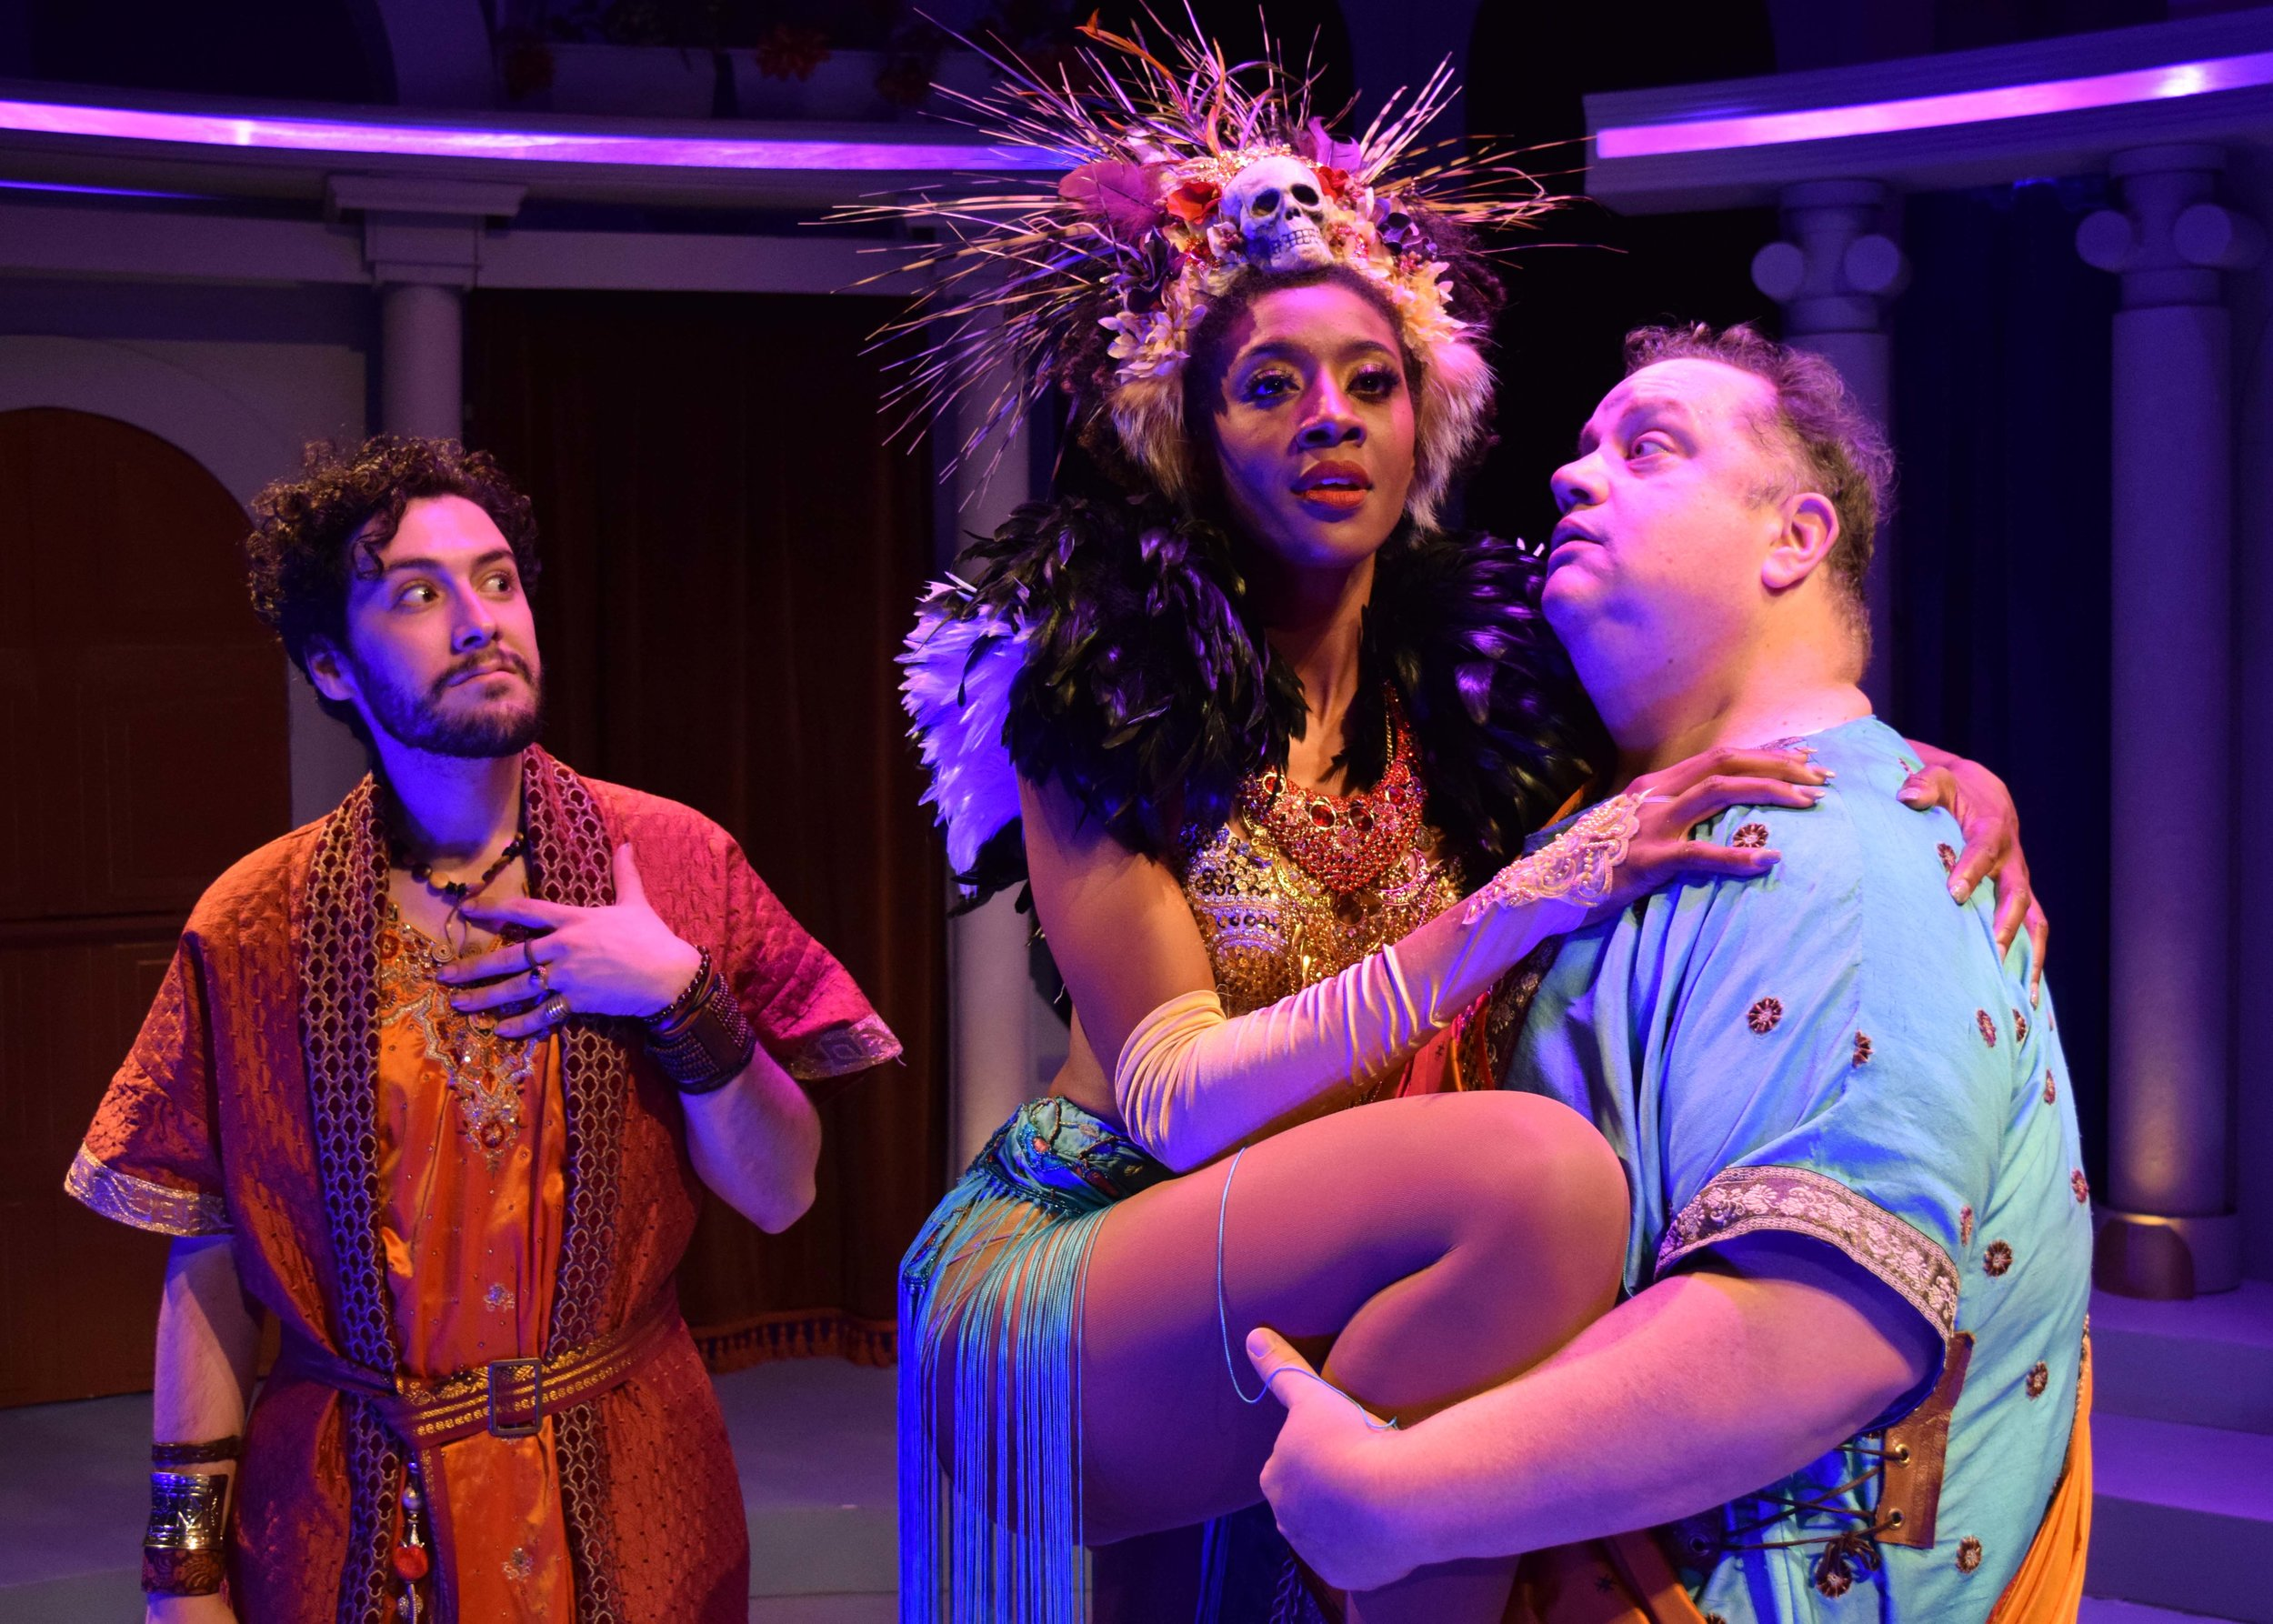 Lycus (E.K. Dagenfield), Gymnasia (Shamicka Benn) and Pseudolus (Paul C. Vogt) in A Funny Thing Happened On The Way To The Forum at the Garry Marshall Theatre. Photo by Chelsea Sutton.